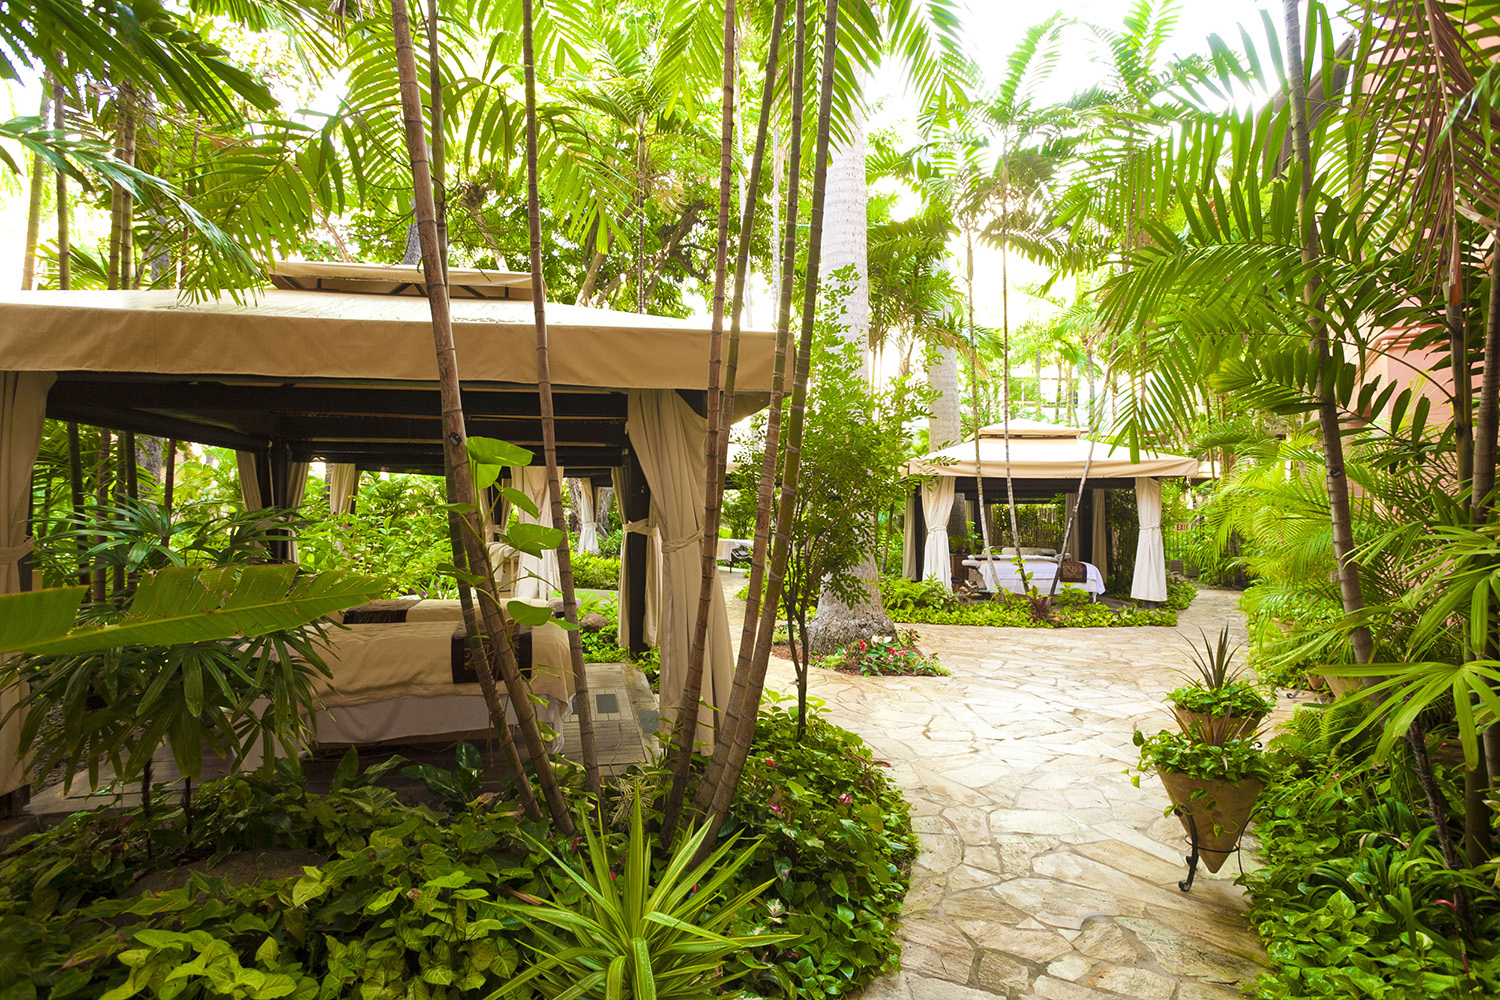 Abhasa Waikiki Spa is the only spa in Honolulu to offer treatments in a tropical garden setting.